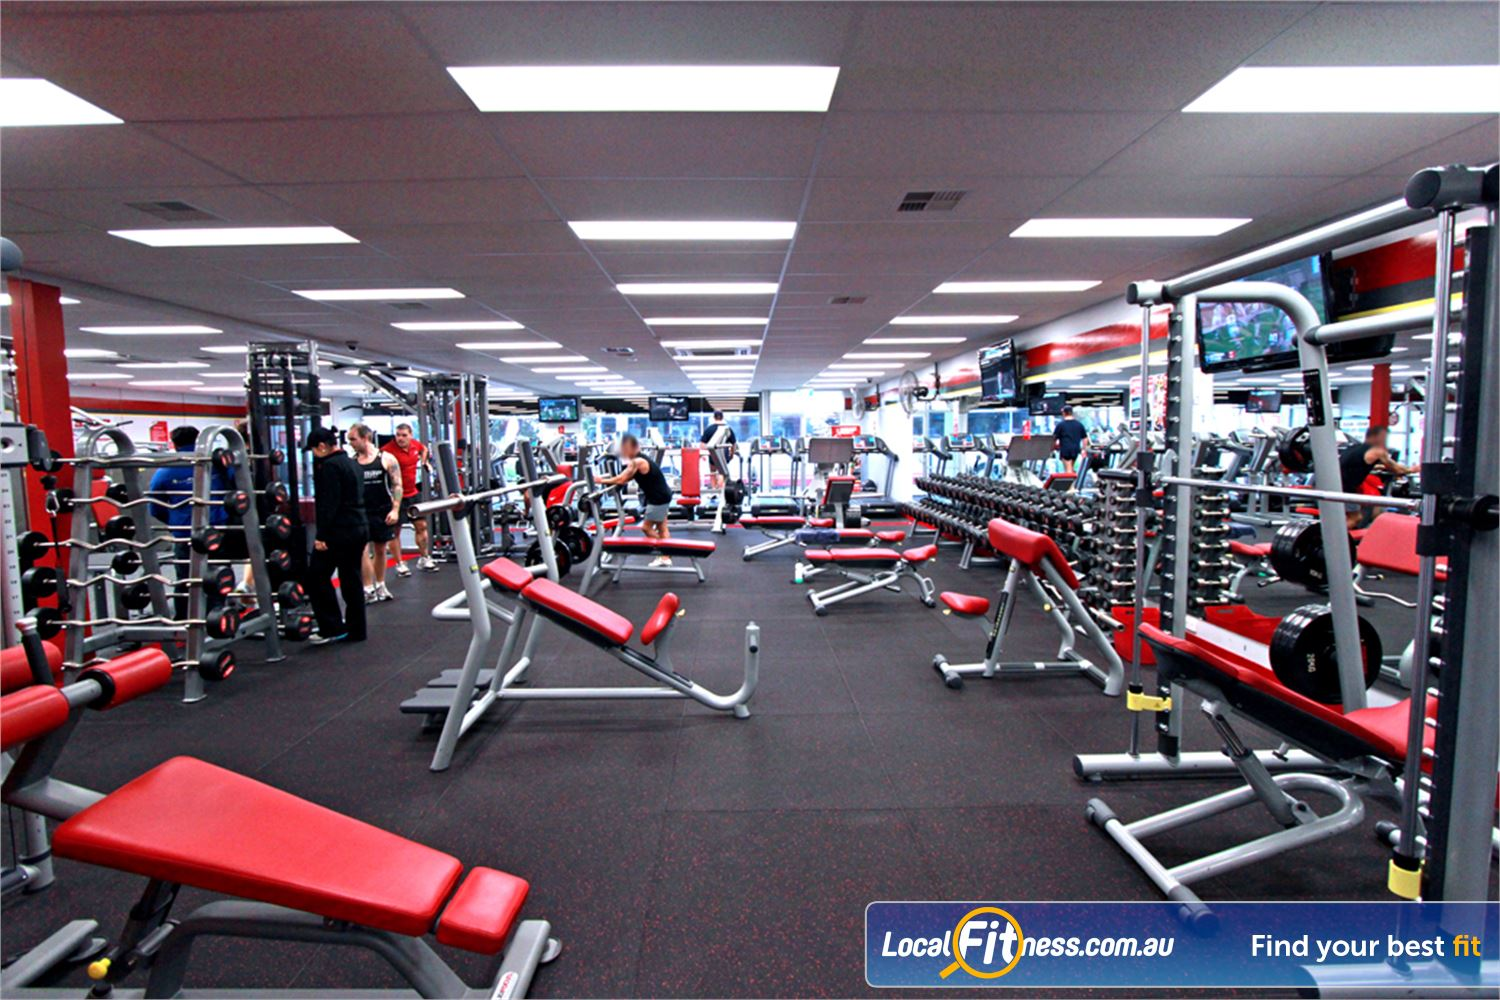 Snap Fitness Preston Our Preston 24 hour gym is open 24 hours a day 7 days a week.